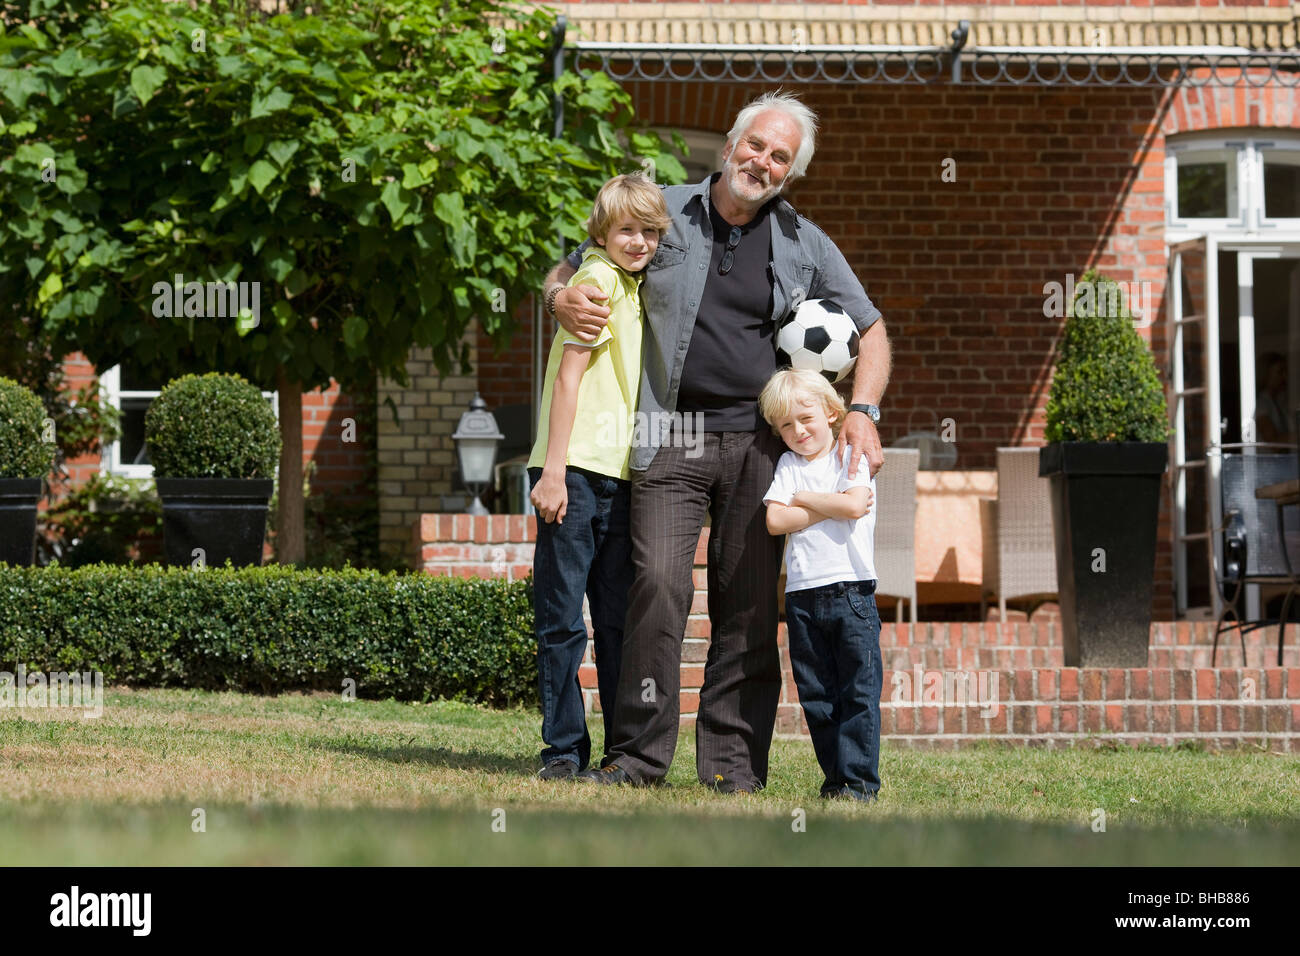 grandfather and kids with football - Stock Image